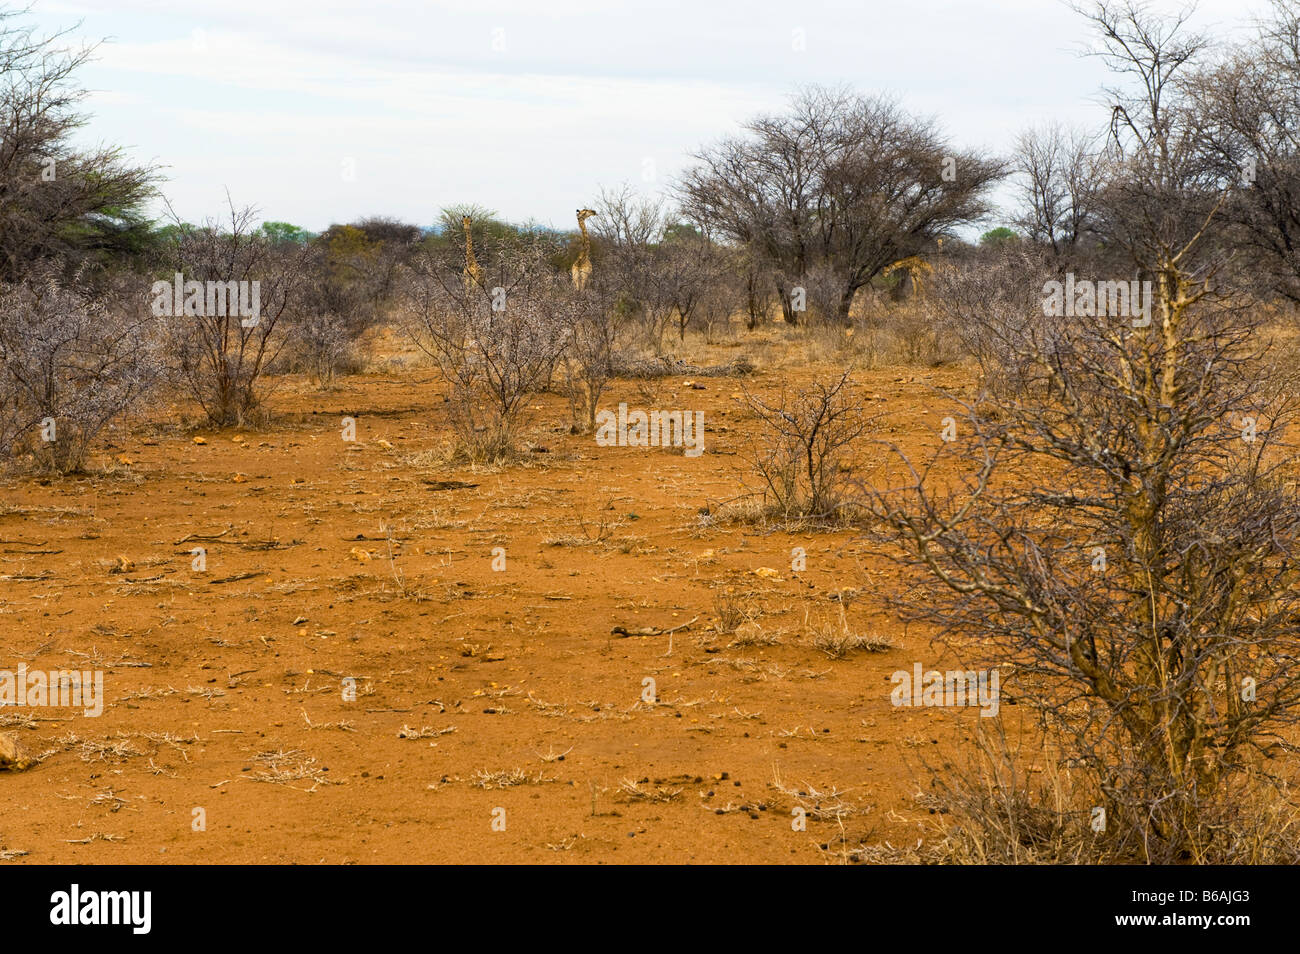 red earth ground SAVANNAH savanne south-africa bush woodland landscape south africa acacia - Stock Image